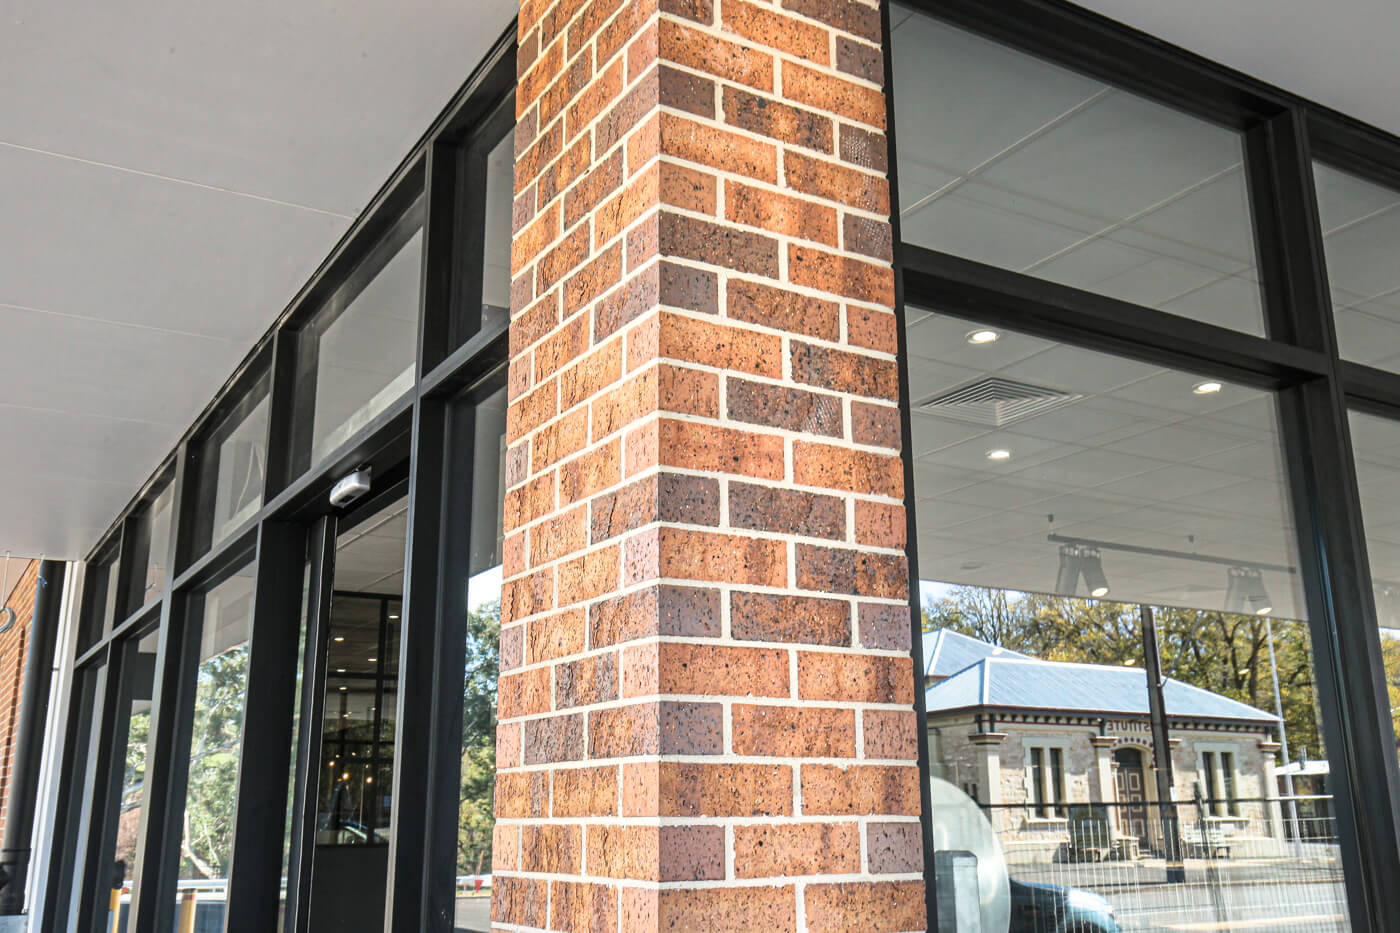 Siena Brick Woodside Shopping Centre Rs 12